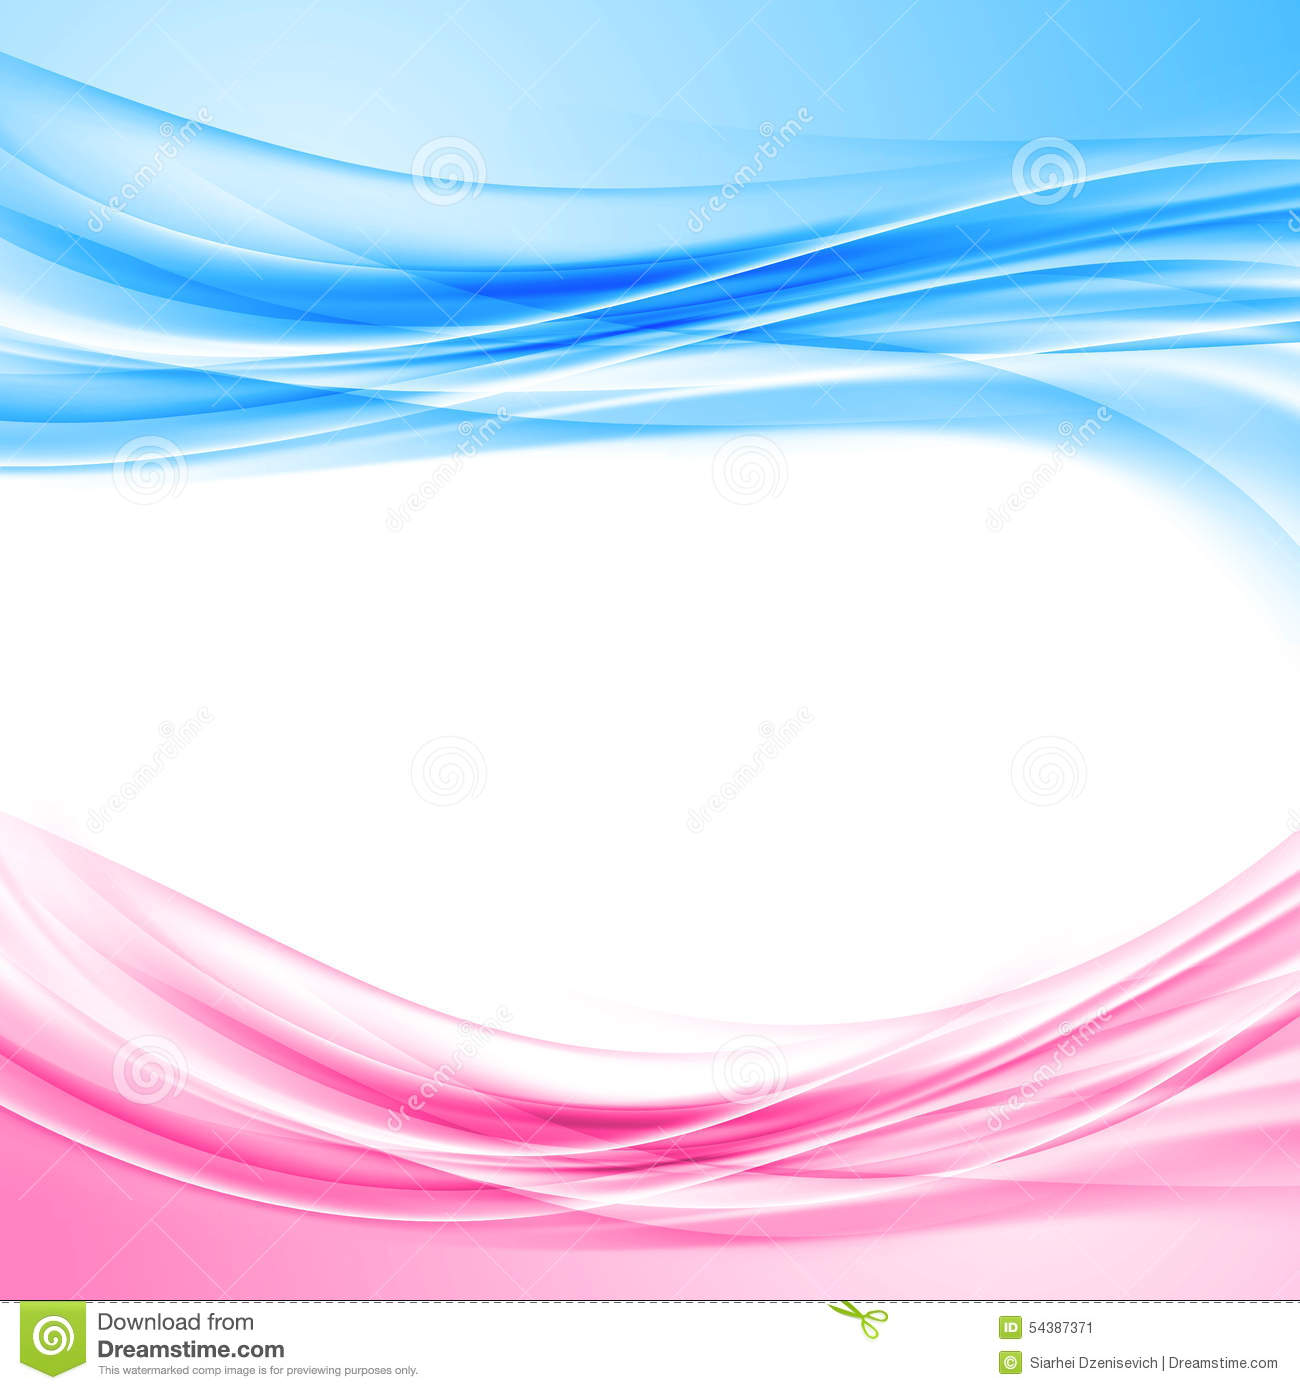 White Wave 3d Wallpaper Bright Blue And Pink Border Abstract Background Stock